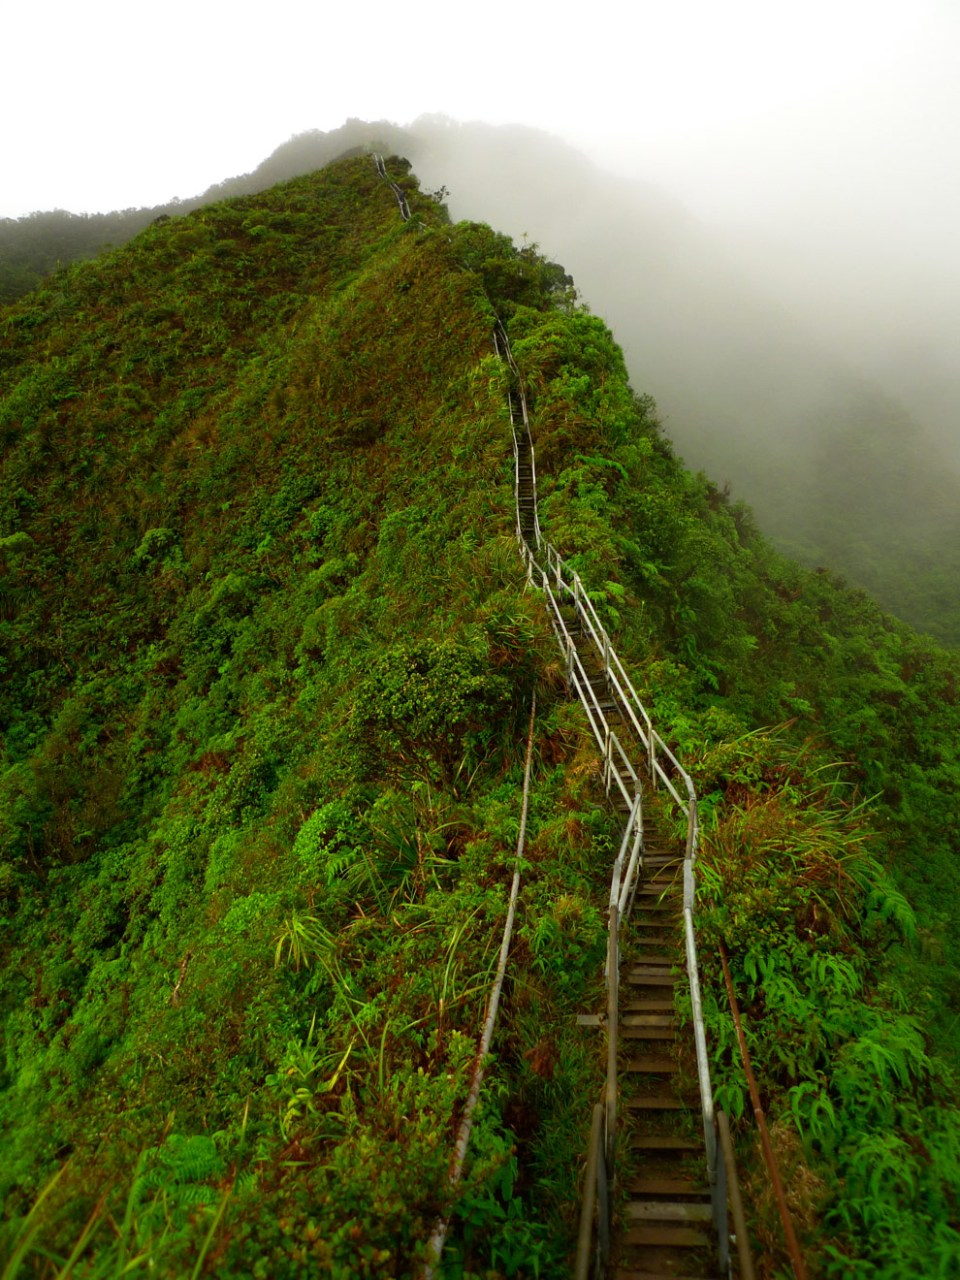 The stairs are divided into 4 or 5 sections with platforms to rest on between each.  unrealhawaii.com